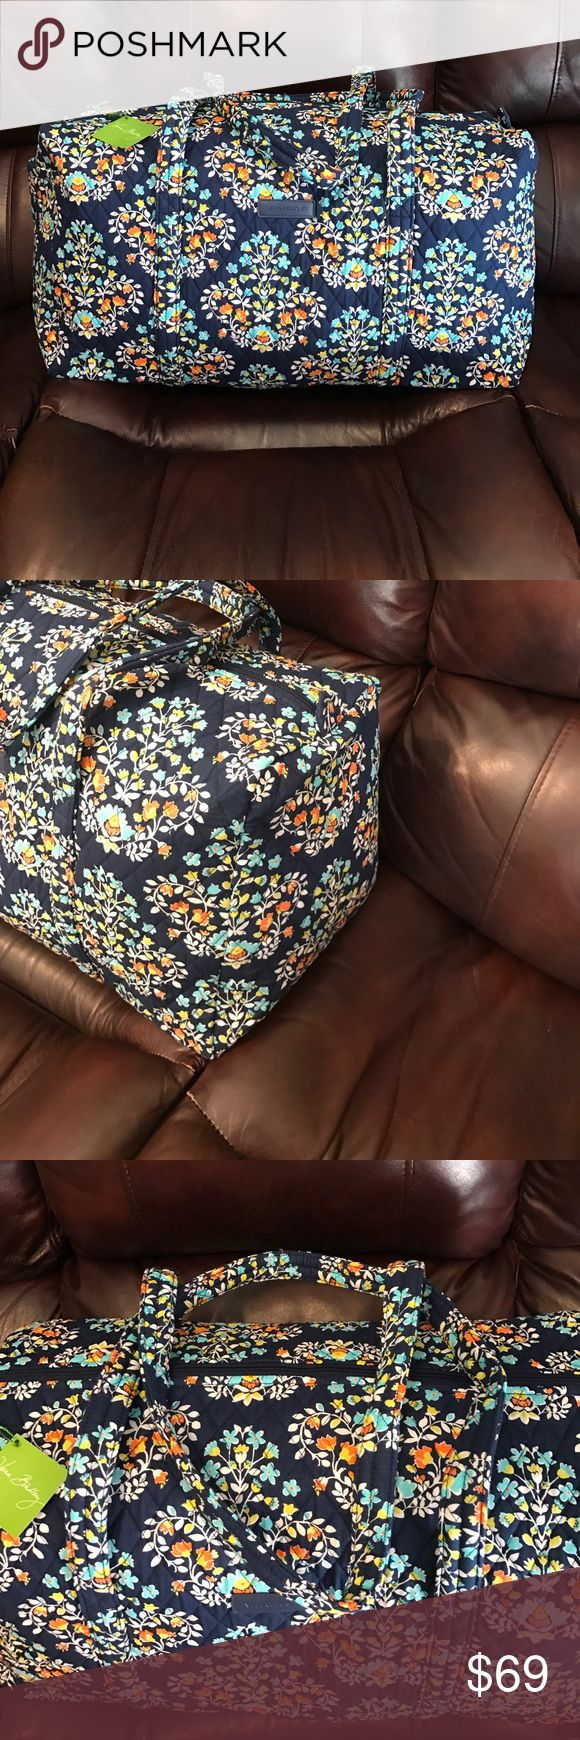 "NWT Vera Bradley large duffel chandelier floral NWT Vera Bradley large duffel chandelier floral. Dimensions 22"" w x 11 ½"" h x 11 ½"" d with 15"" strap drop Vera Bradley Bags Travel Bags"